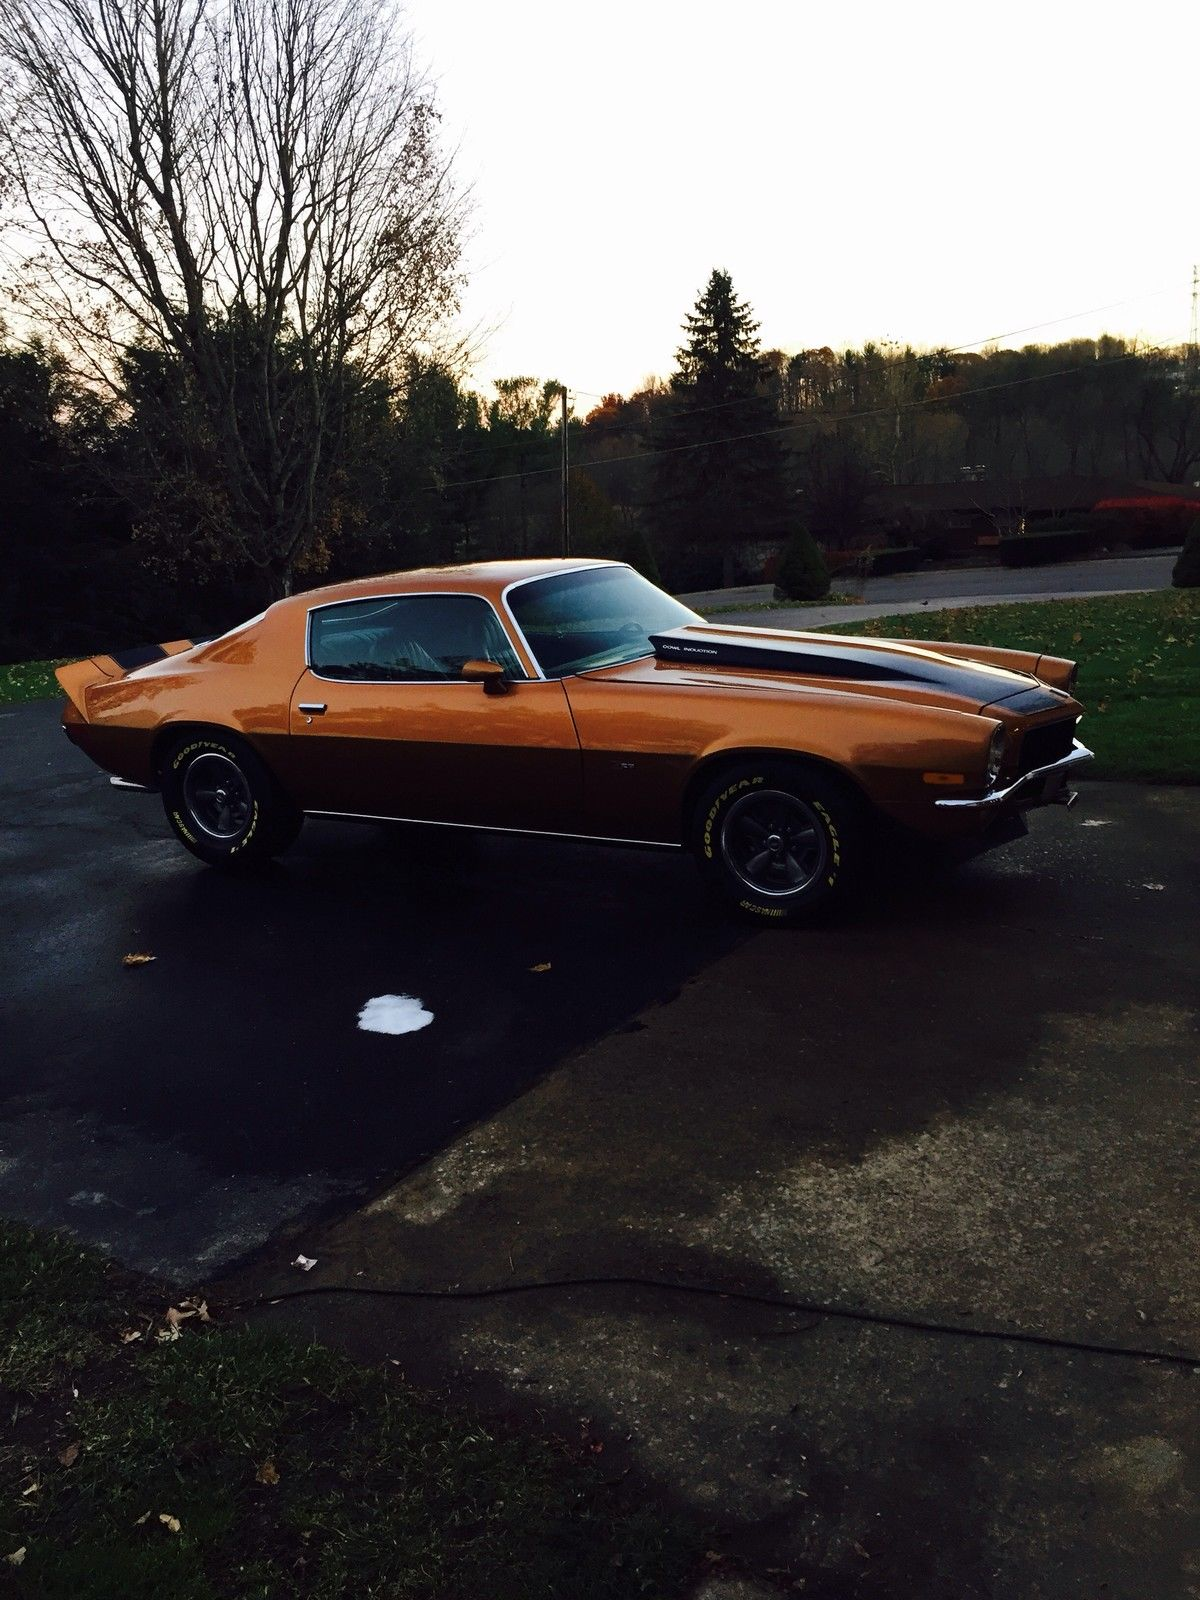 1972 camaro z28 for sale in south glens falls new york united states. Black Bedroom Furniture Sets. Home Design Ideas